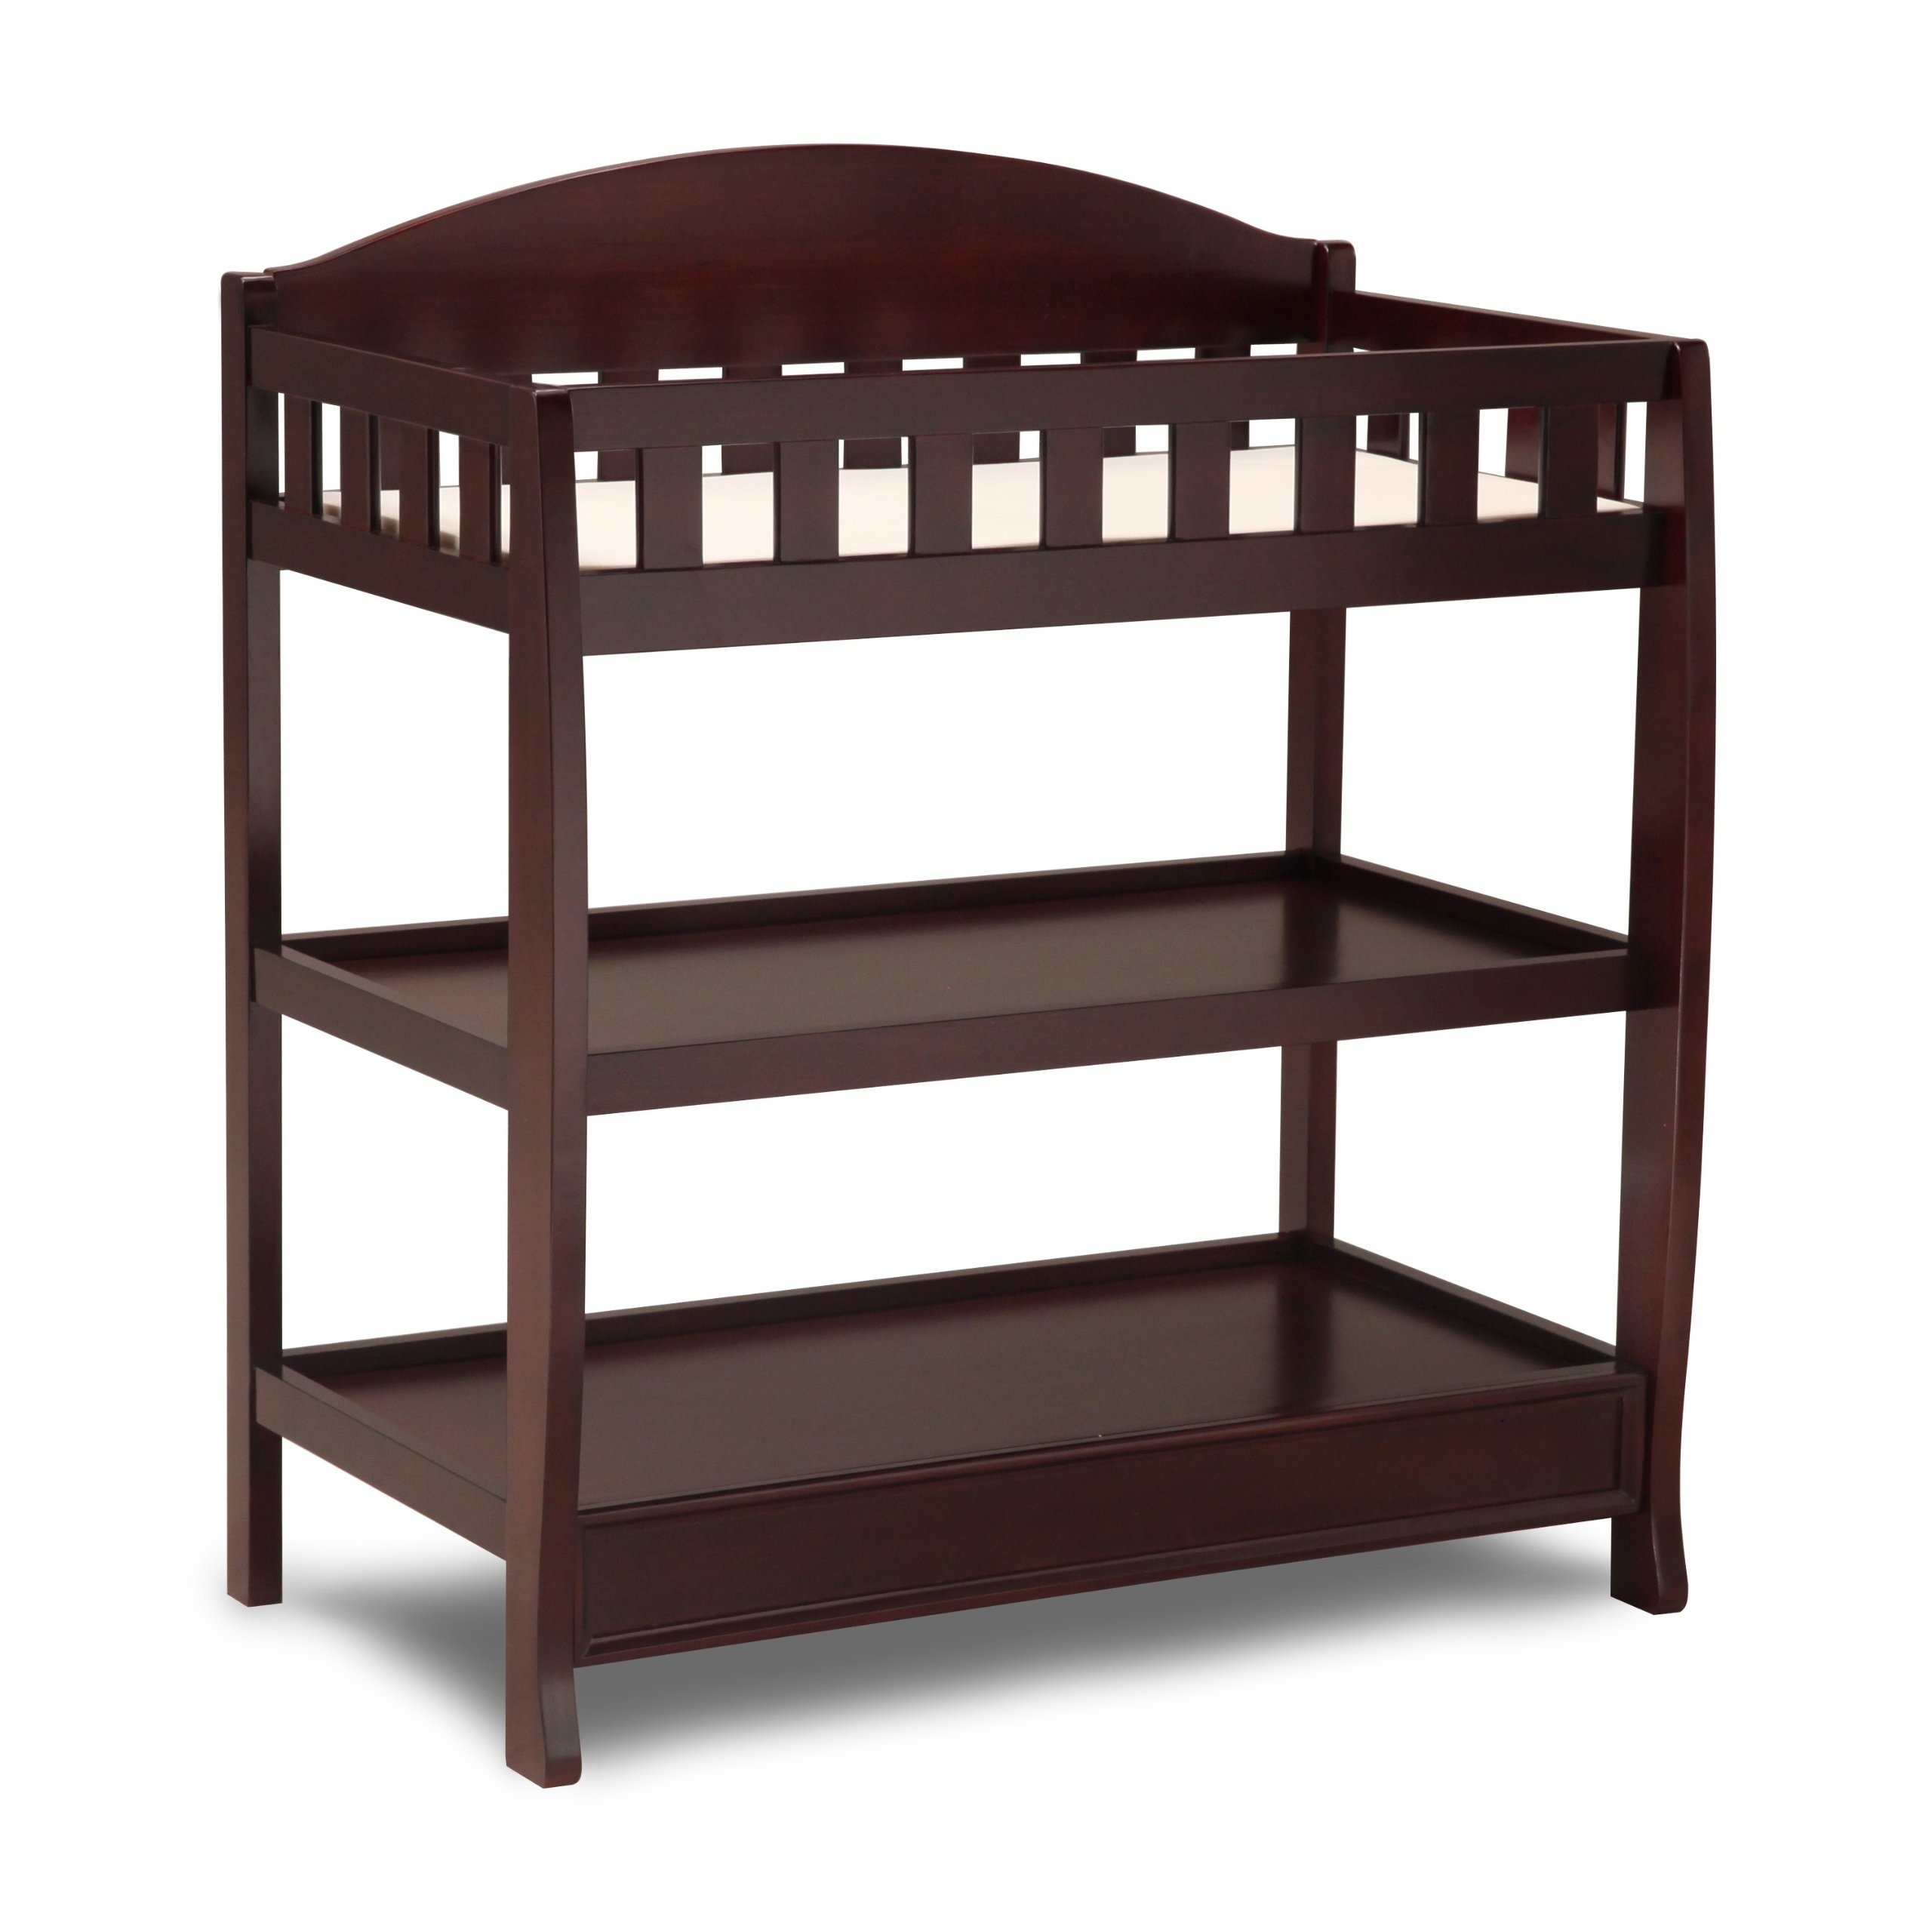 Delta Children Infant Changing Table with Pad, Espresso Cherry